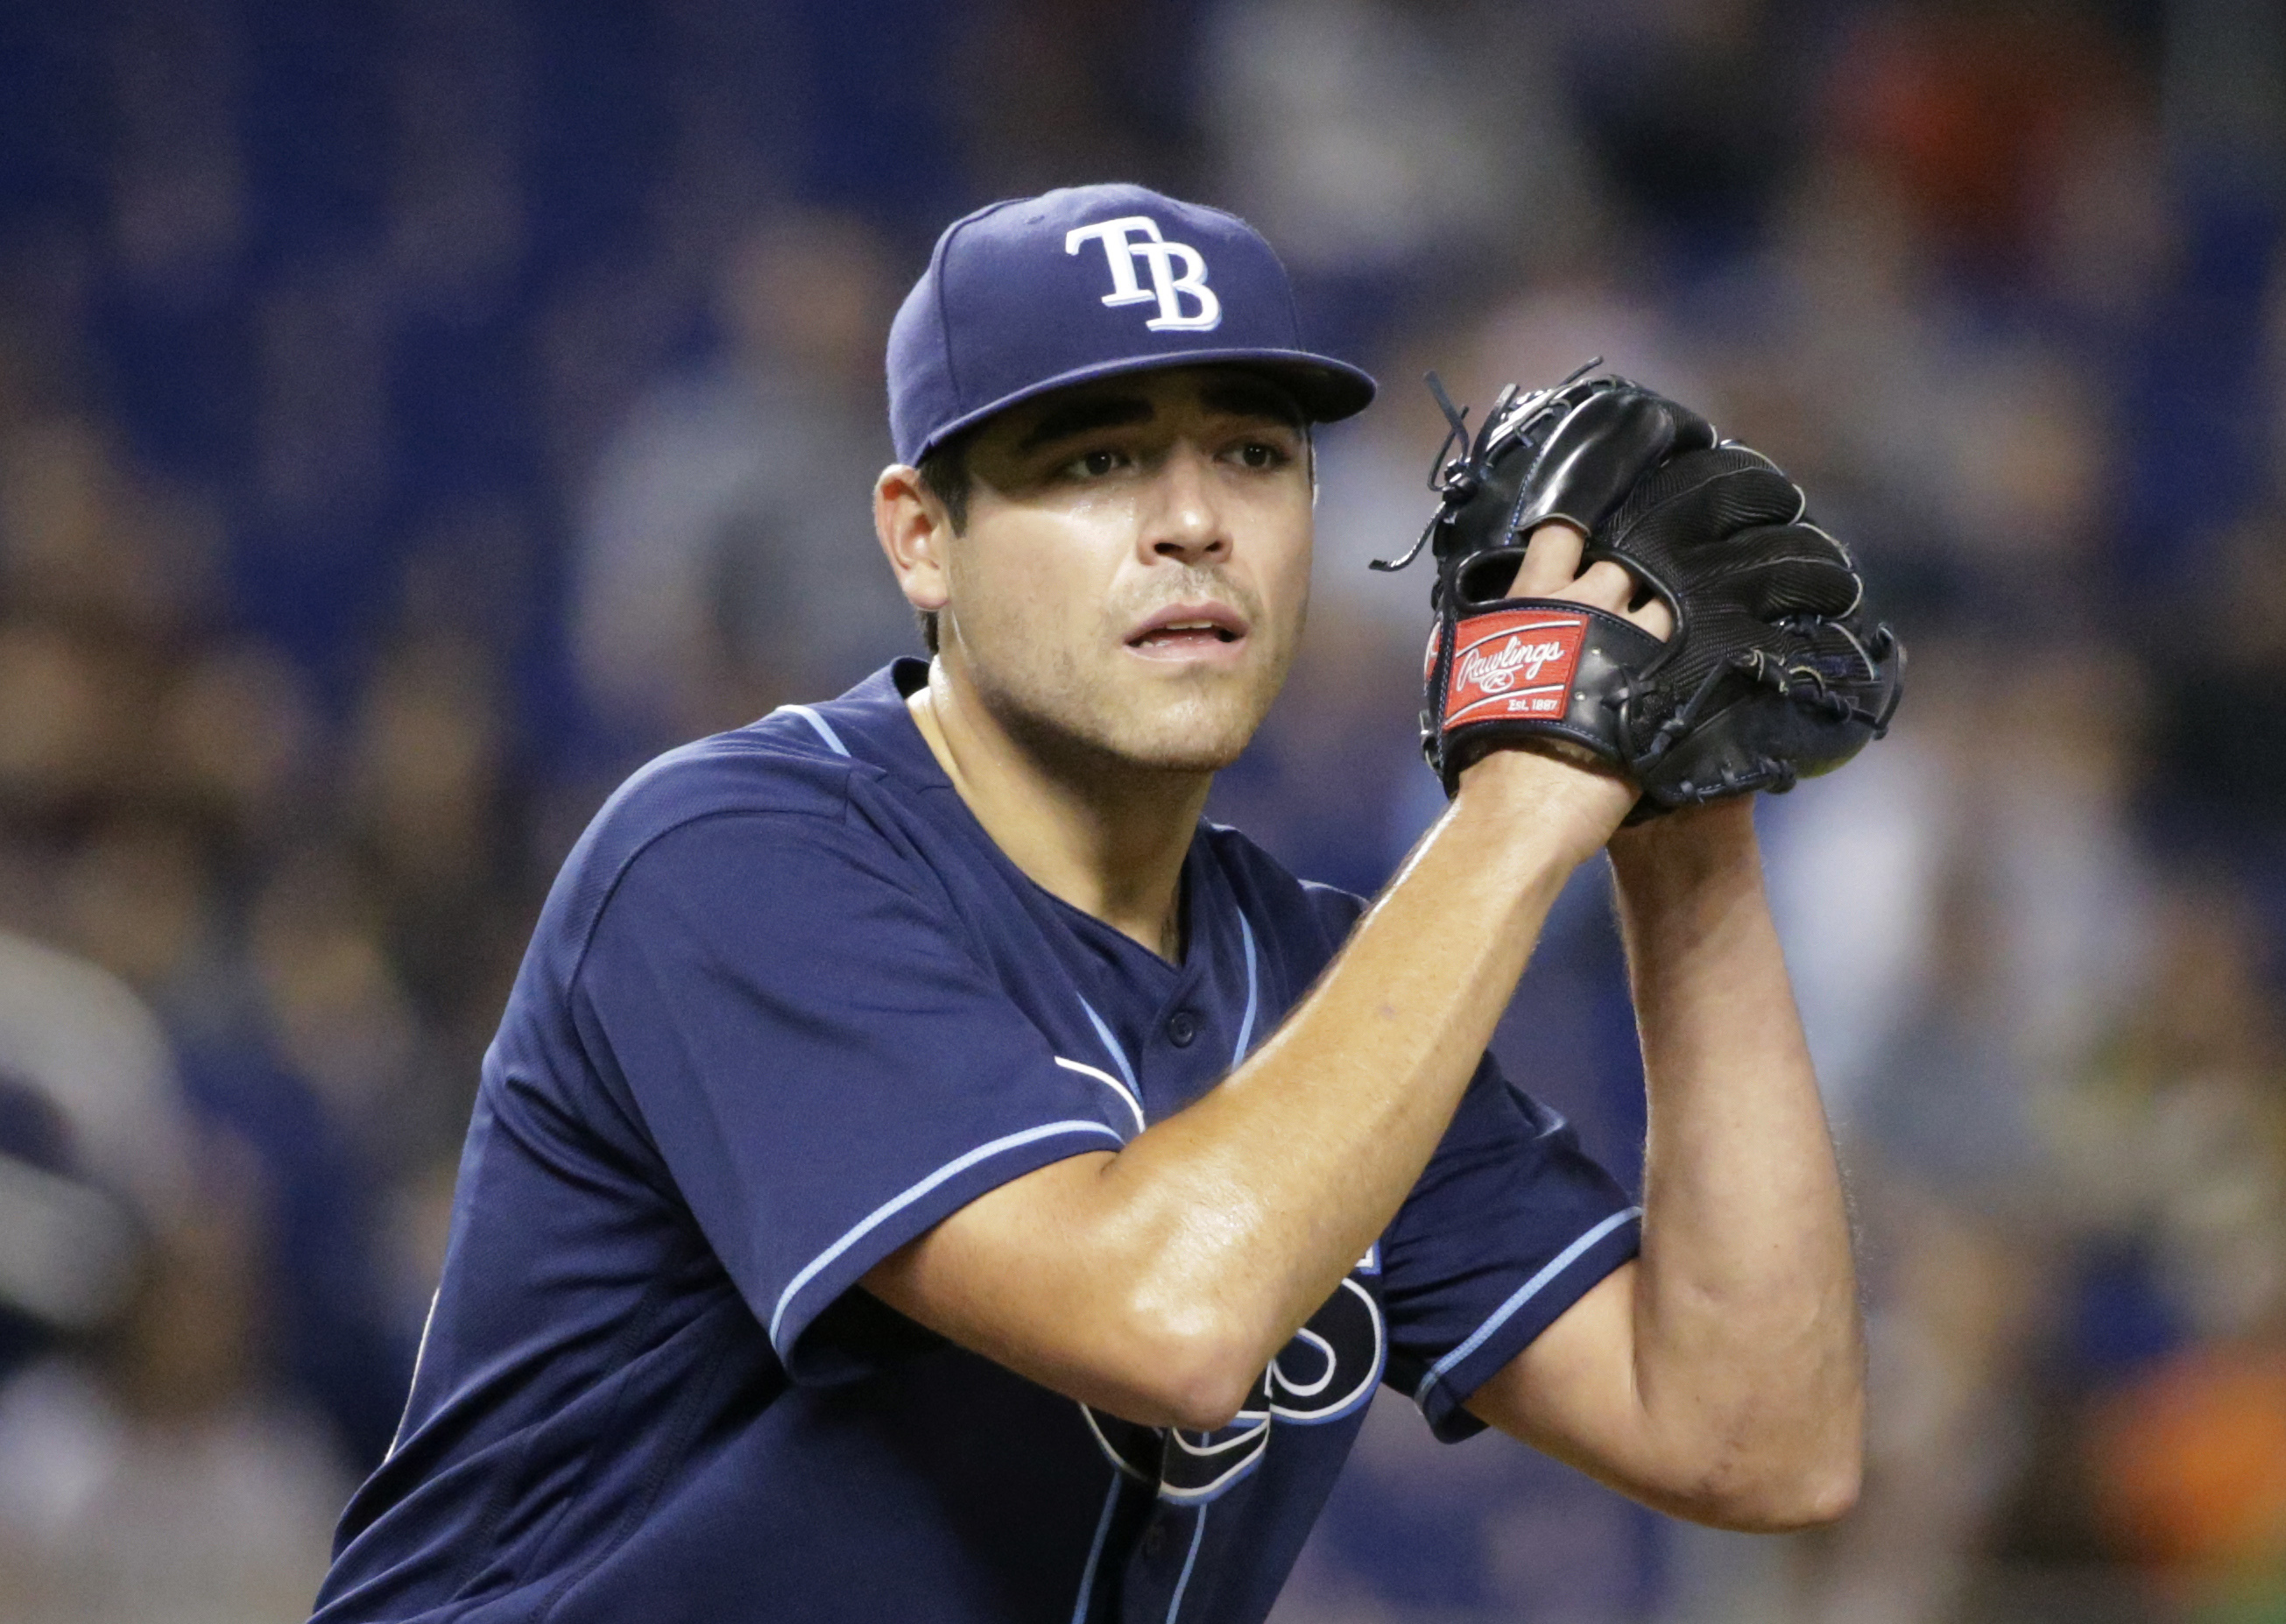 Tampa Bay Rays' Matt Moore prepares to deliver a pitch during the first inning of a baseball game against the Miami Marlins, Monday, May 23, 2016, in Miami. (AP Photo/Wilfredo Lee)